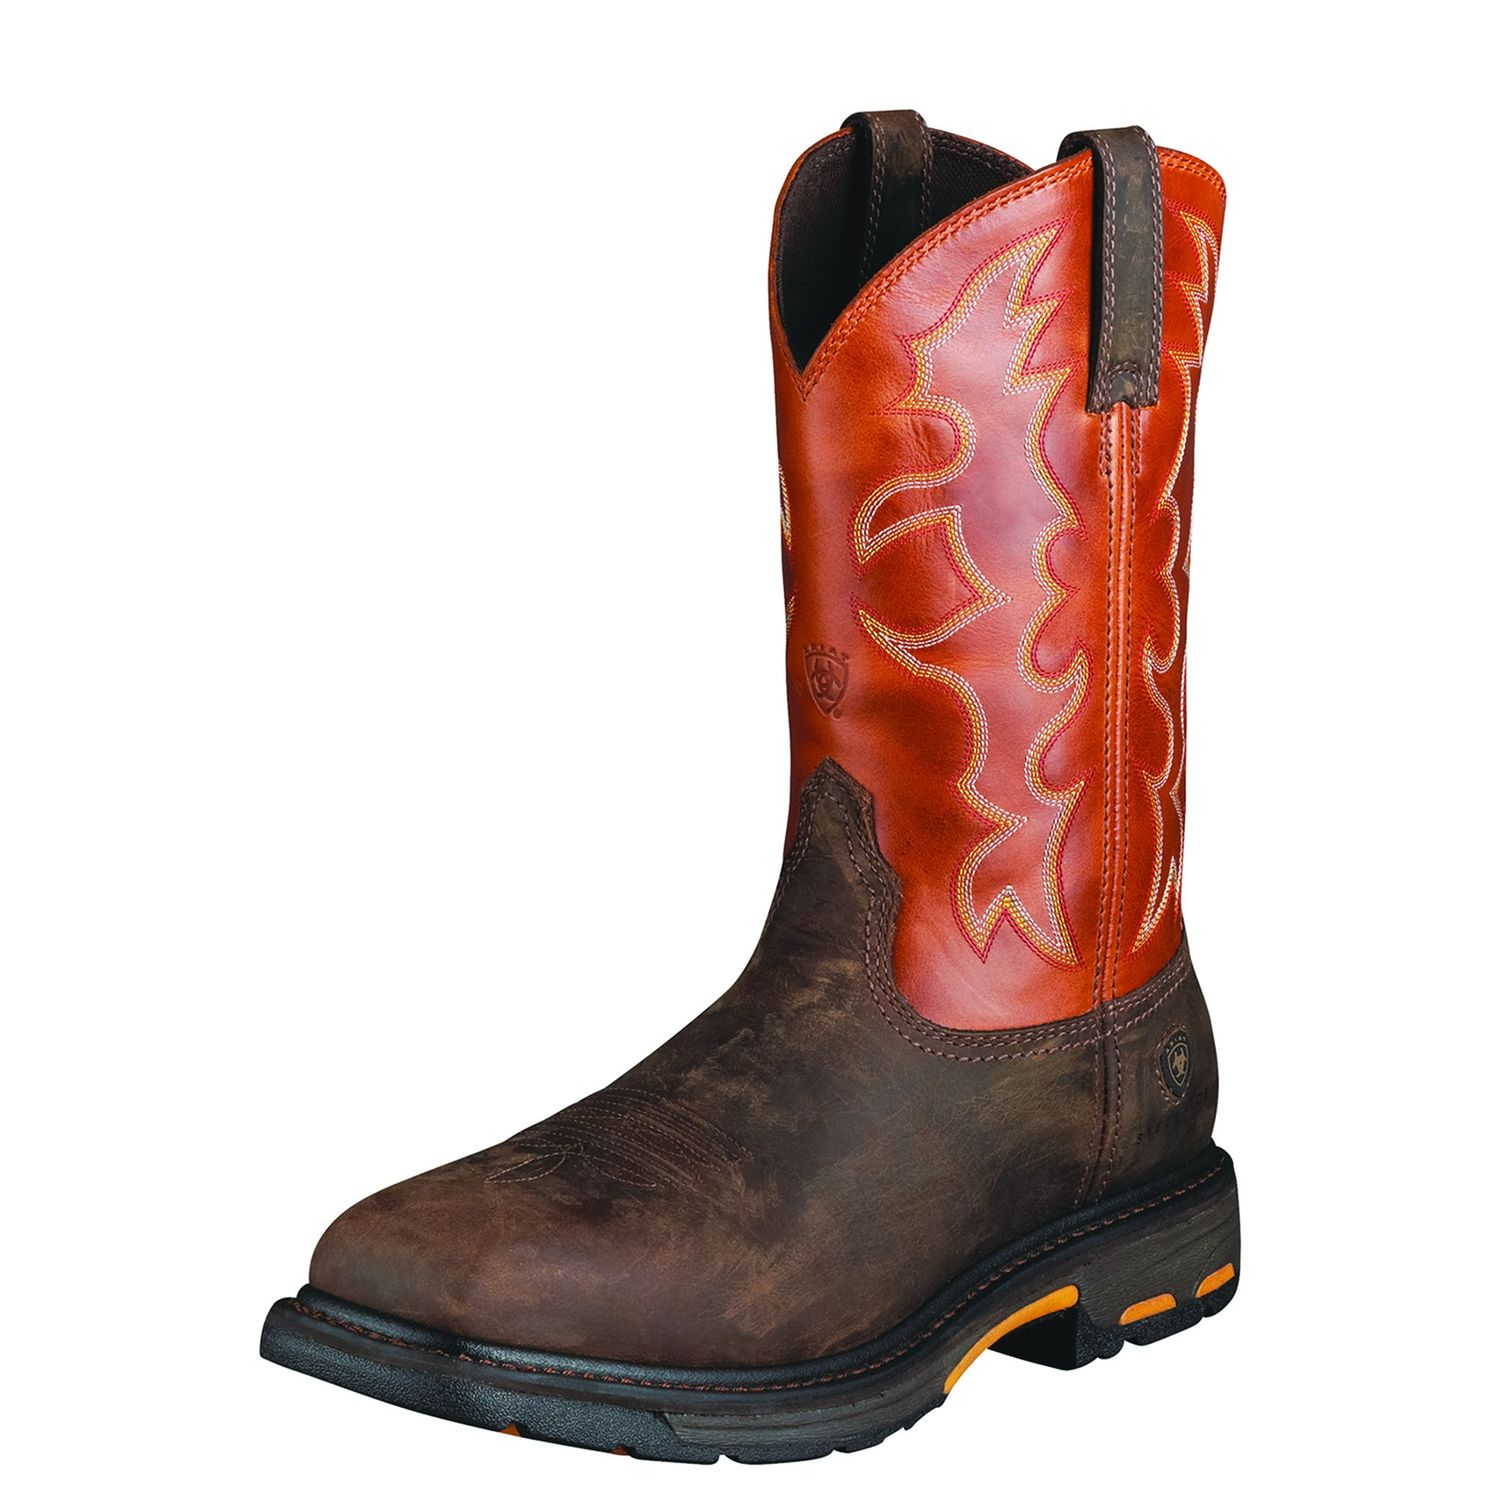 Workhog Steel Toe -Ariat